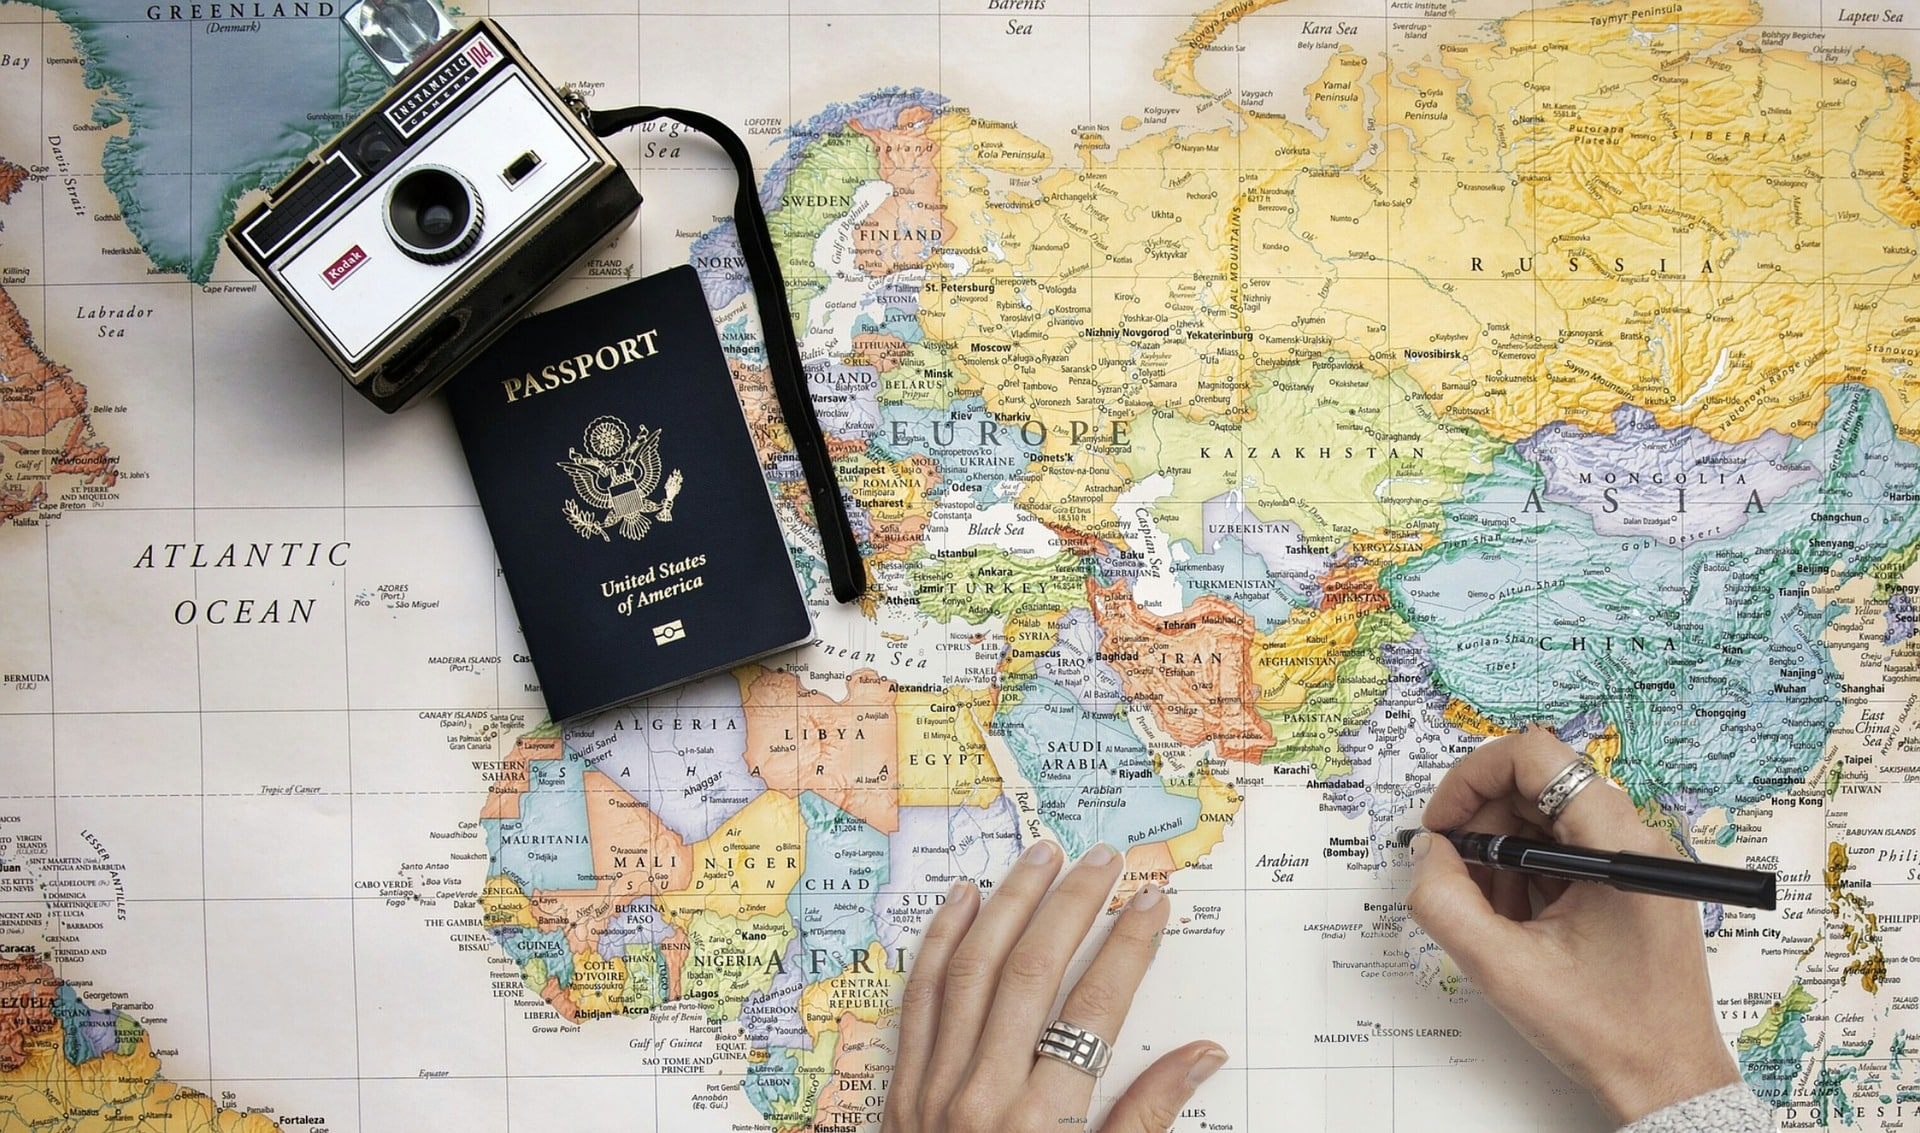 how to get travel document